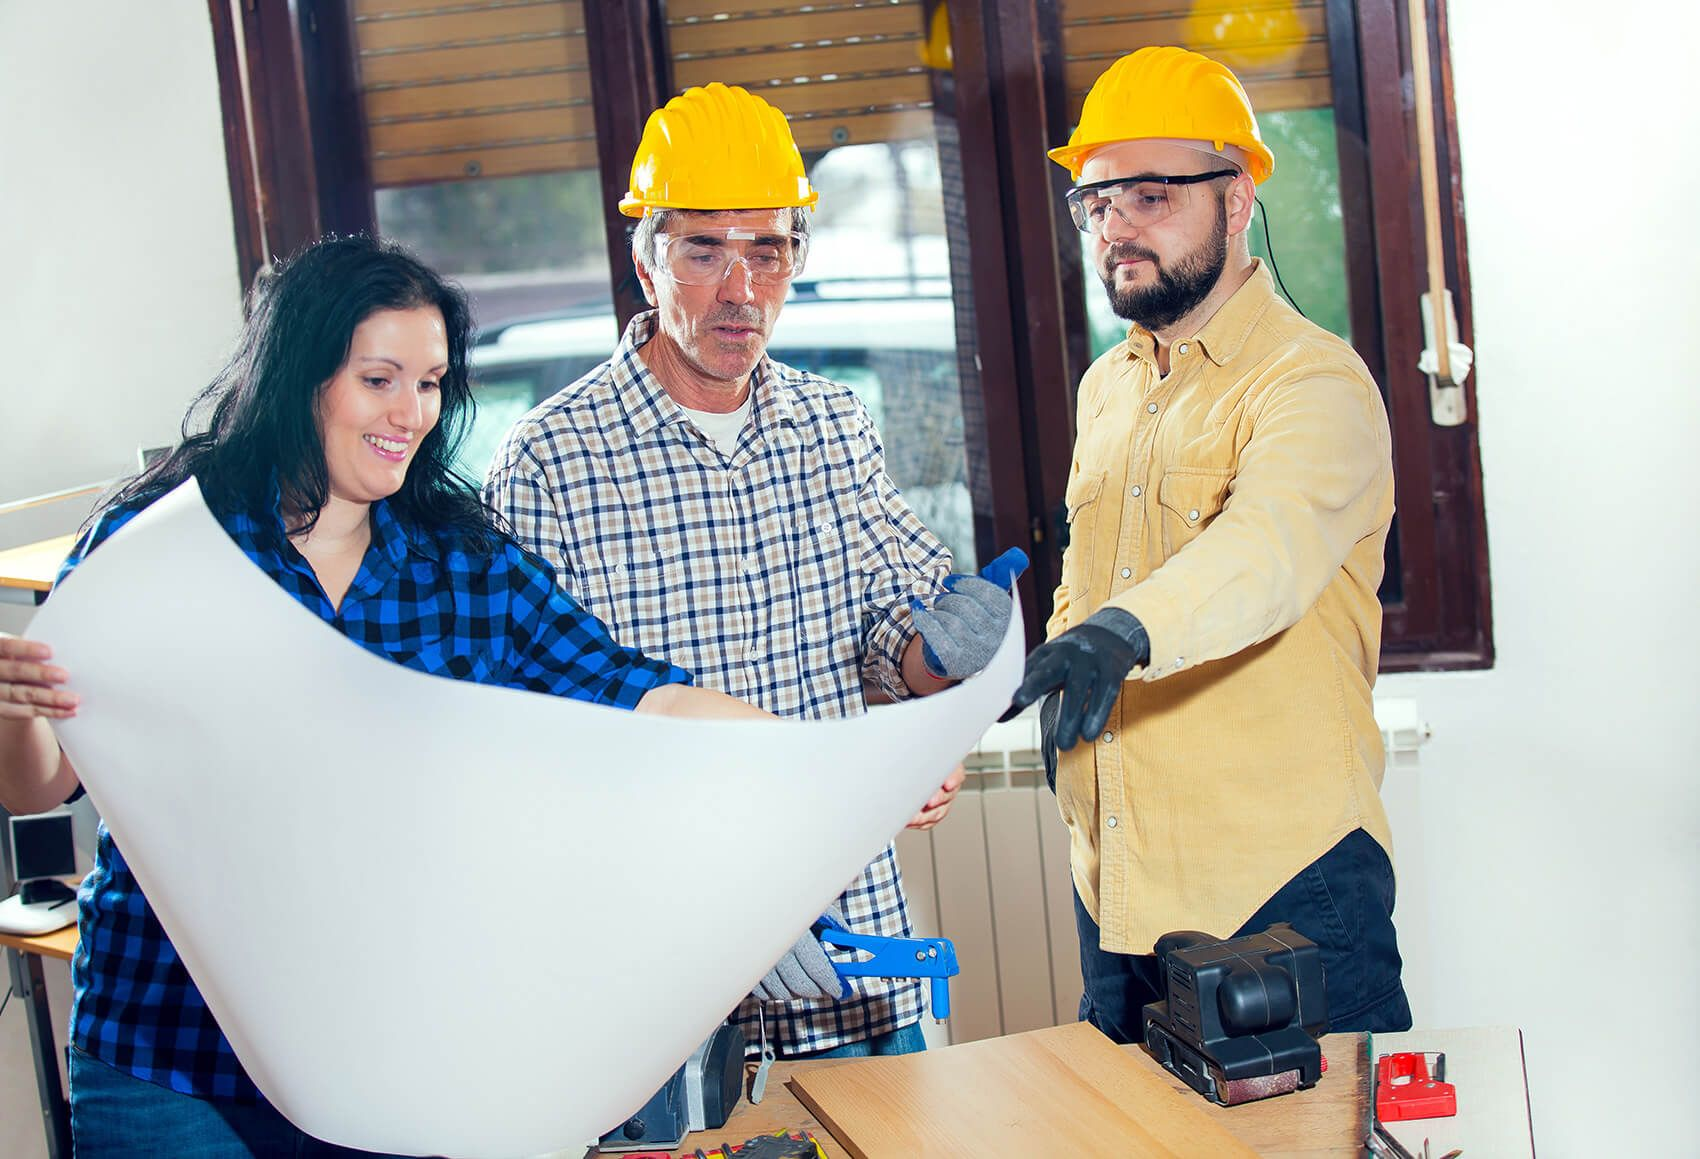 Search Home Constructors And New Homes For Sale On Qlook By Paul Walker Building Maintenance Building Construction Roof Installation